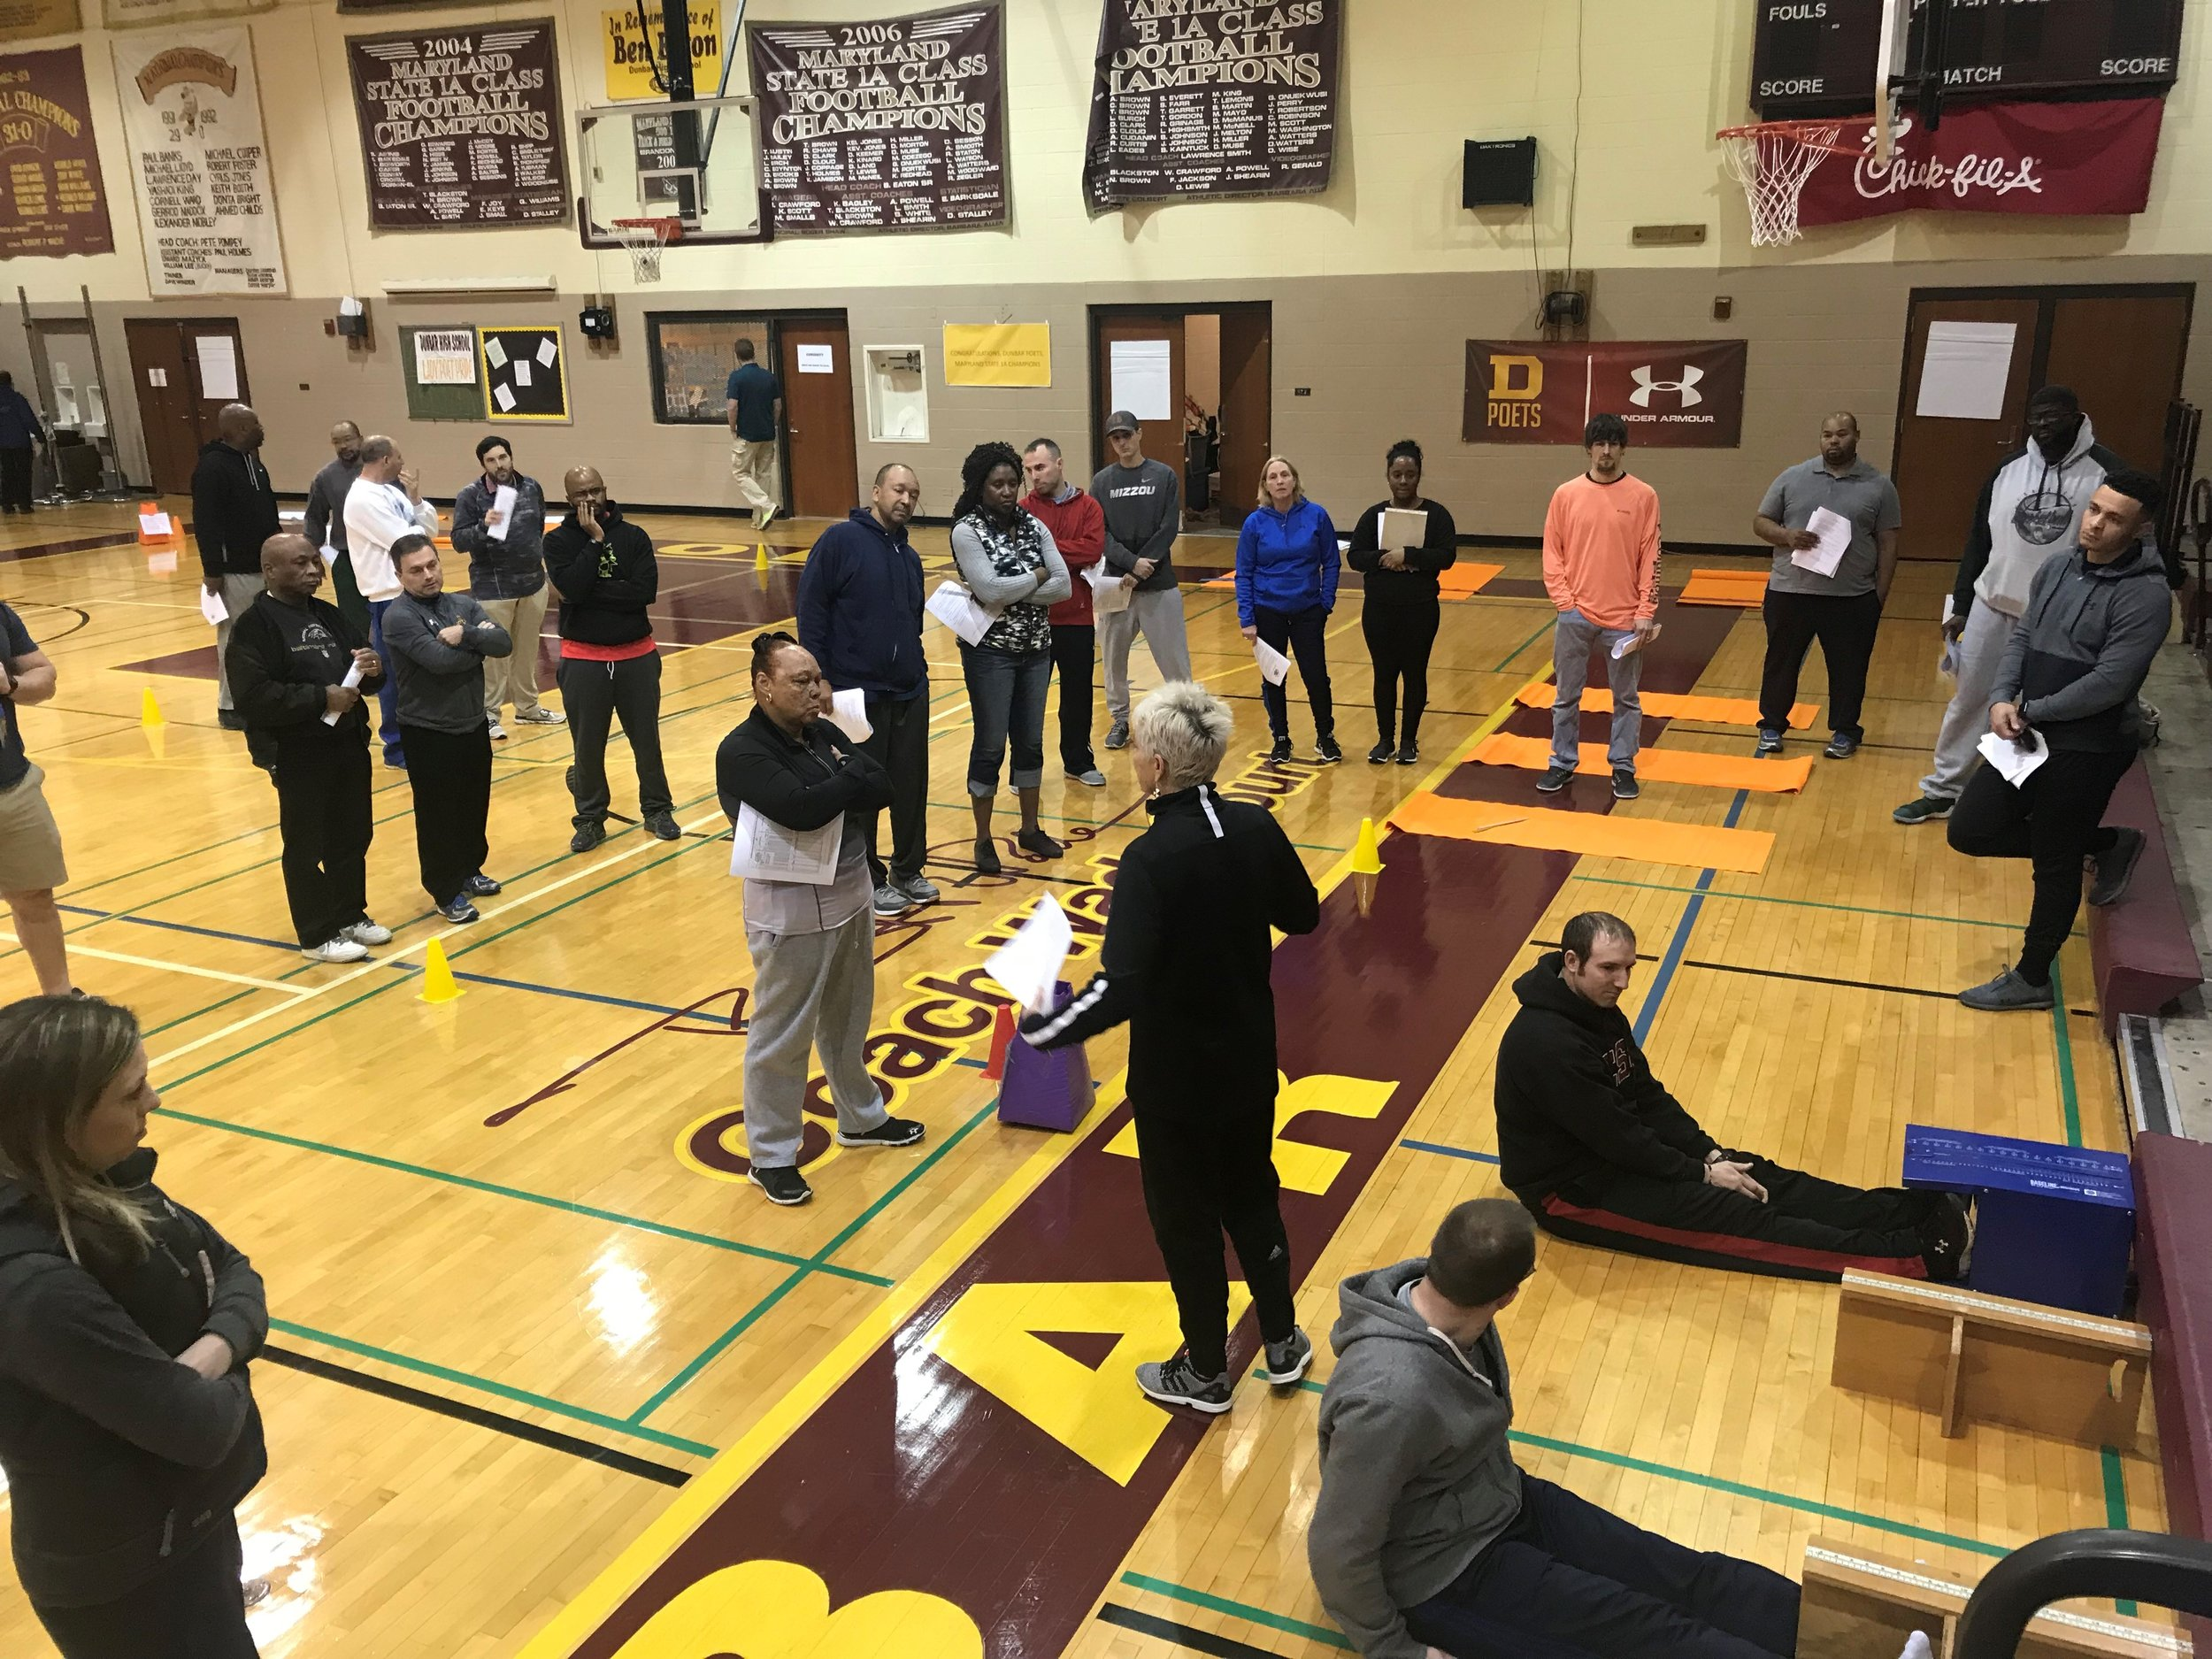 At one of the training stations, PE teachers gathered around to role-play an activity. Photo by Project Play: Baltimore.